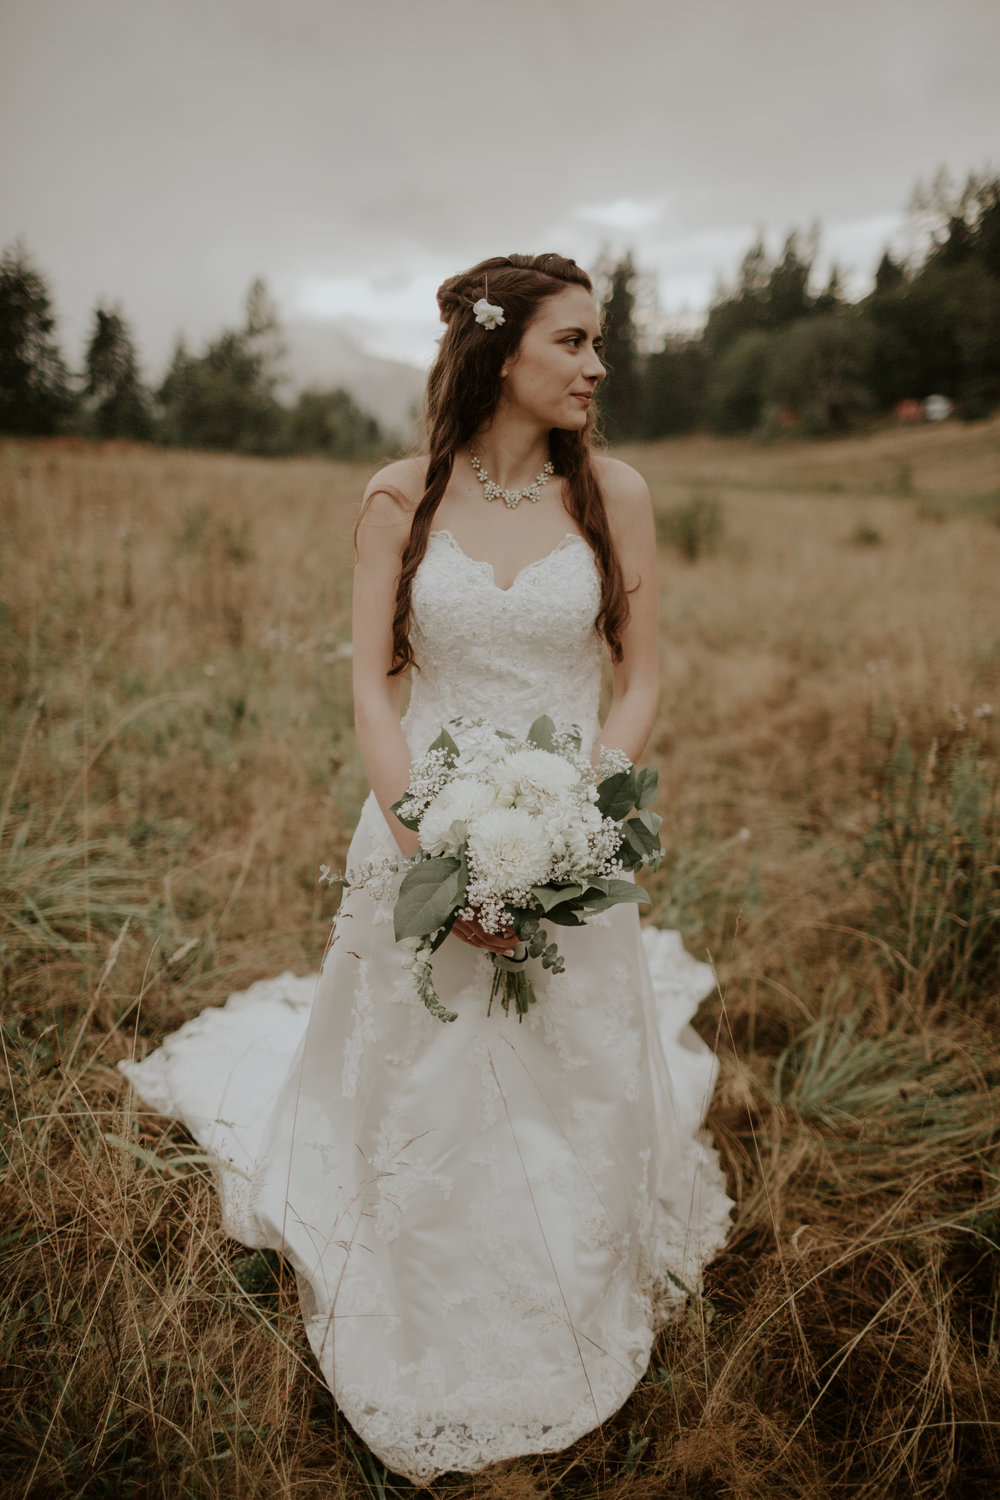 Port-Angeles-elopement-wedding-pnw-olympic-peninsula-photographer-portrait-kayladawnphoto-kayla-dawn-photography-olympic-national-park-184.jpg